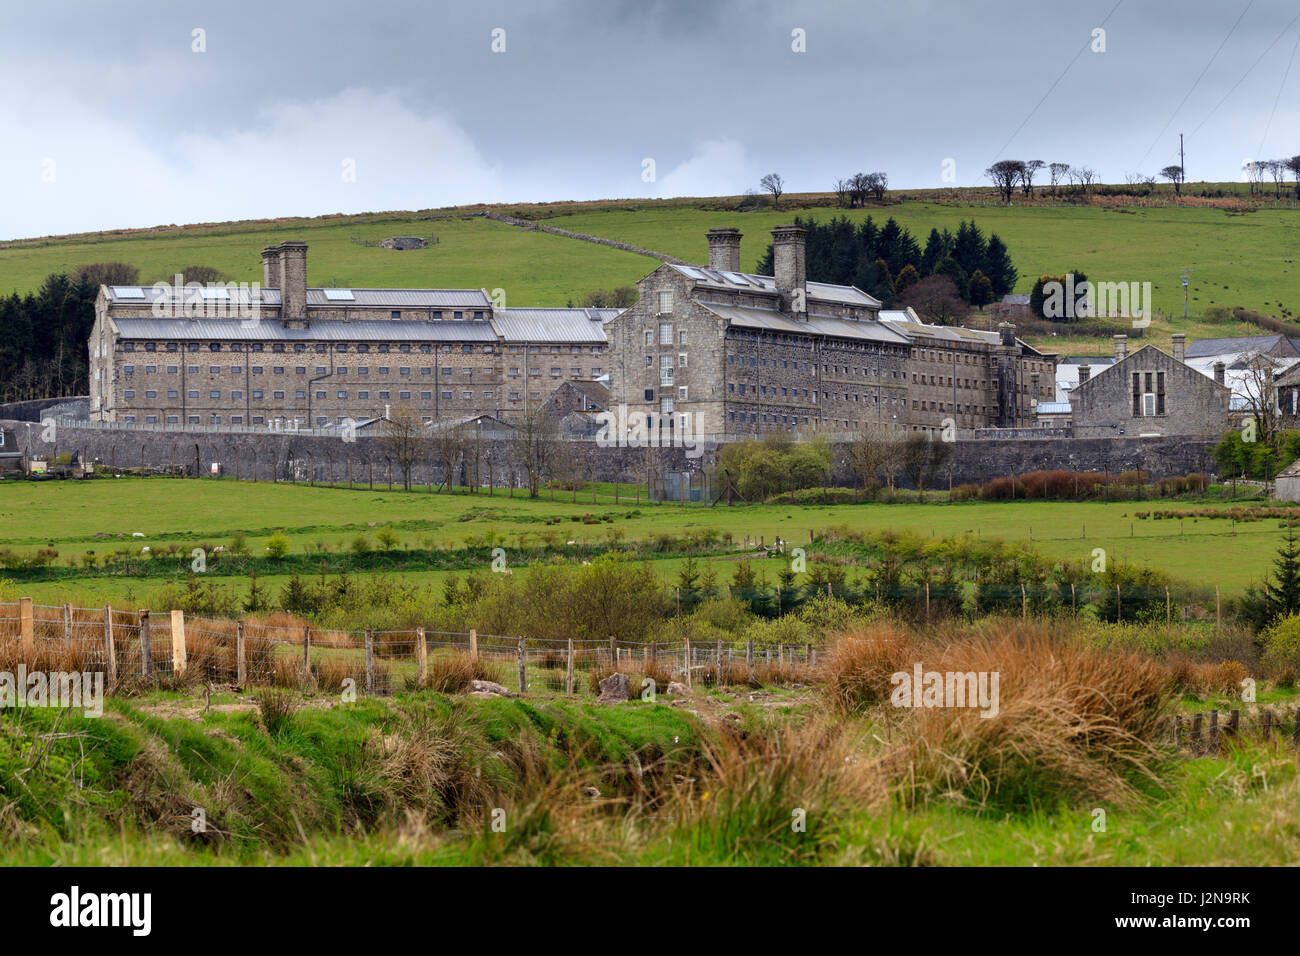 view-across-the-moor-of-her-majestys-prison-dartmoor-princetown-devon-J2N9RK.jpg